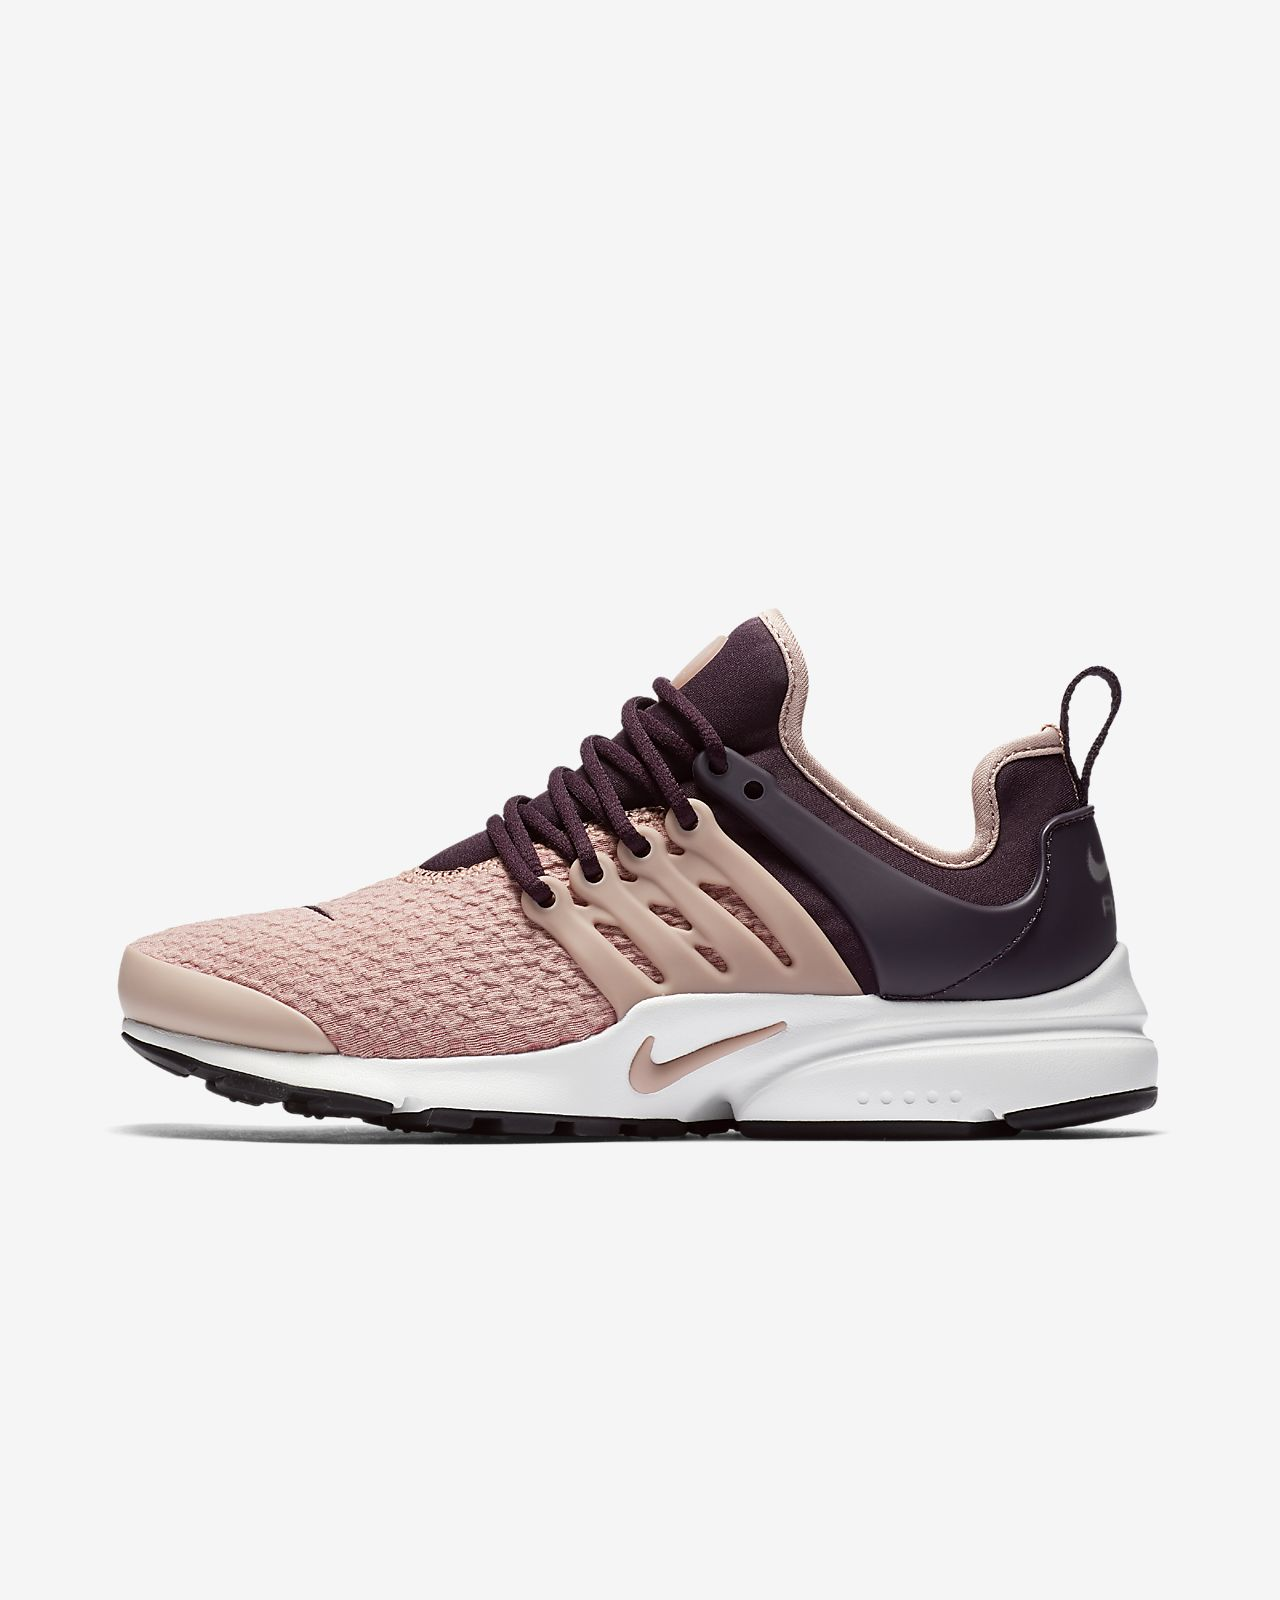 watch 1a1e9 2f39e ... Nike Air Presto Women s Shoe